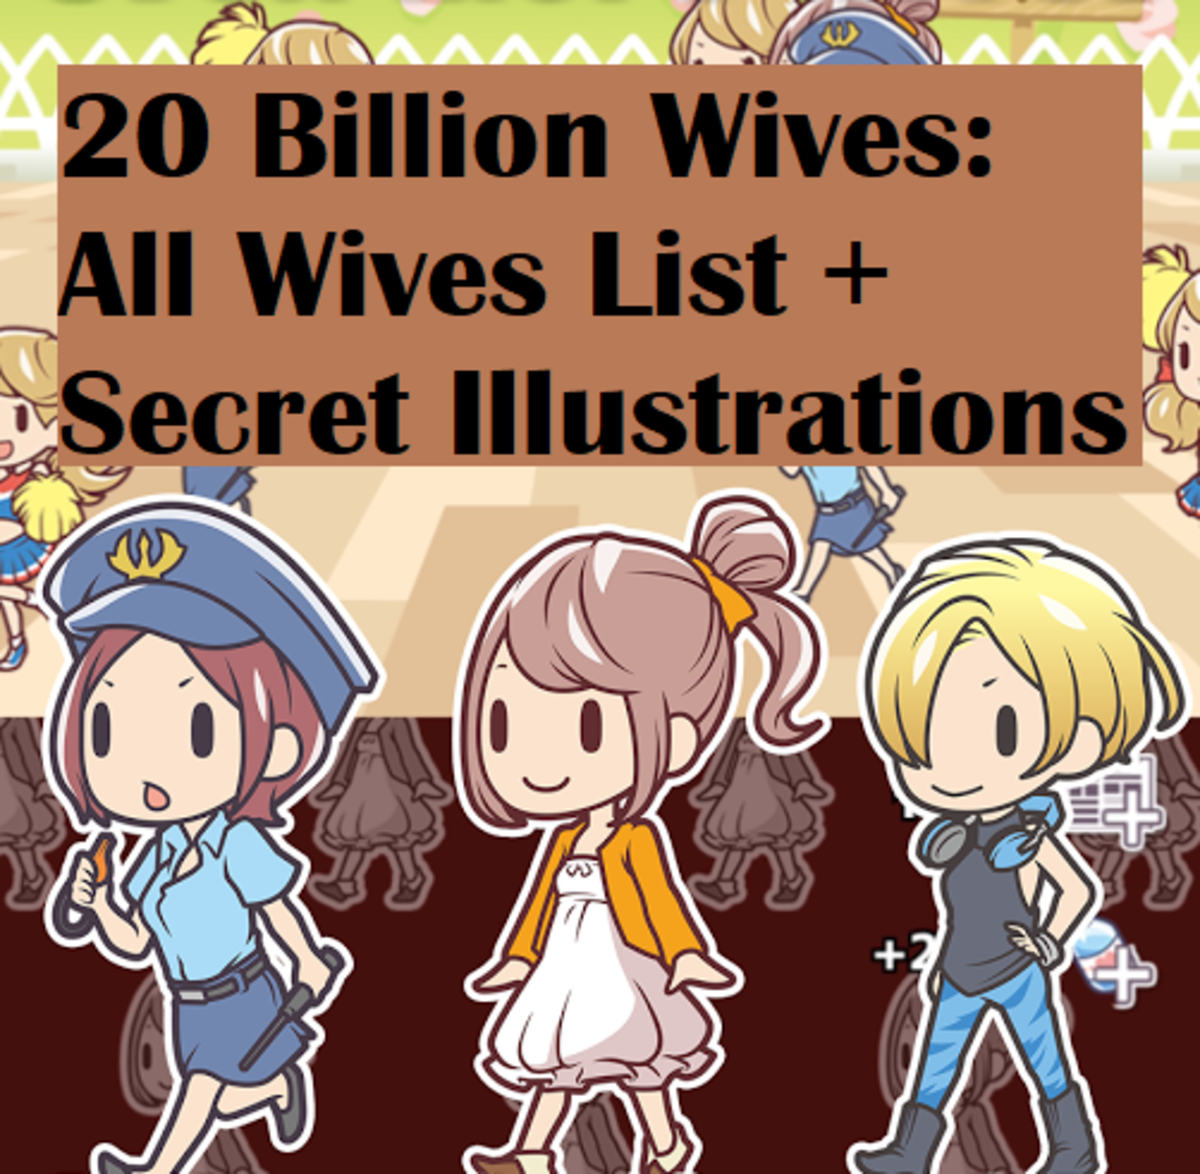 20B Wives: All Wives List and Secret Illustrations